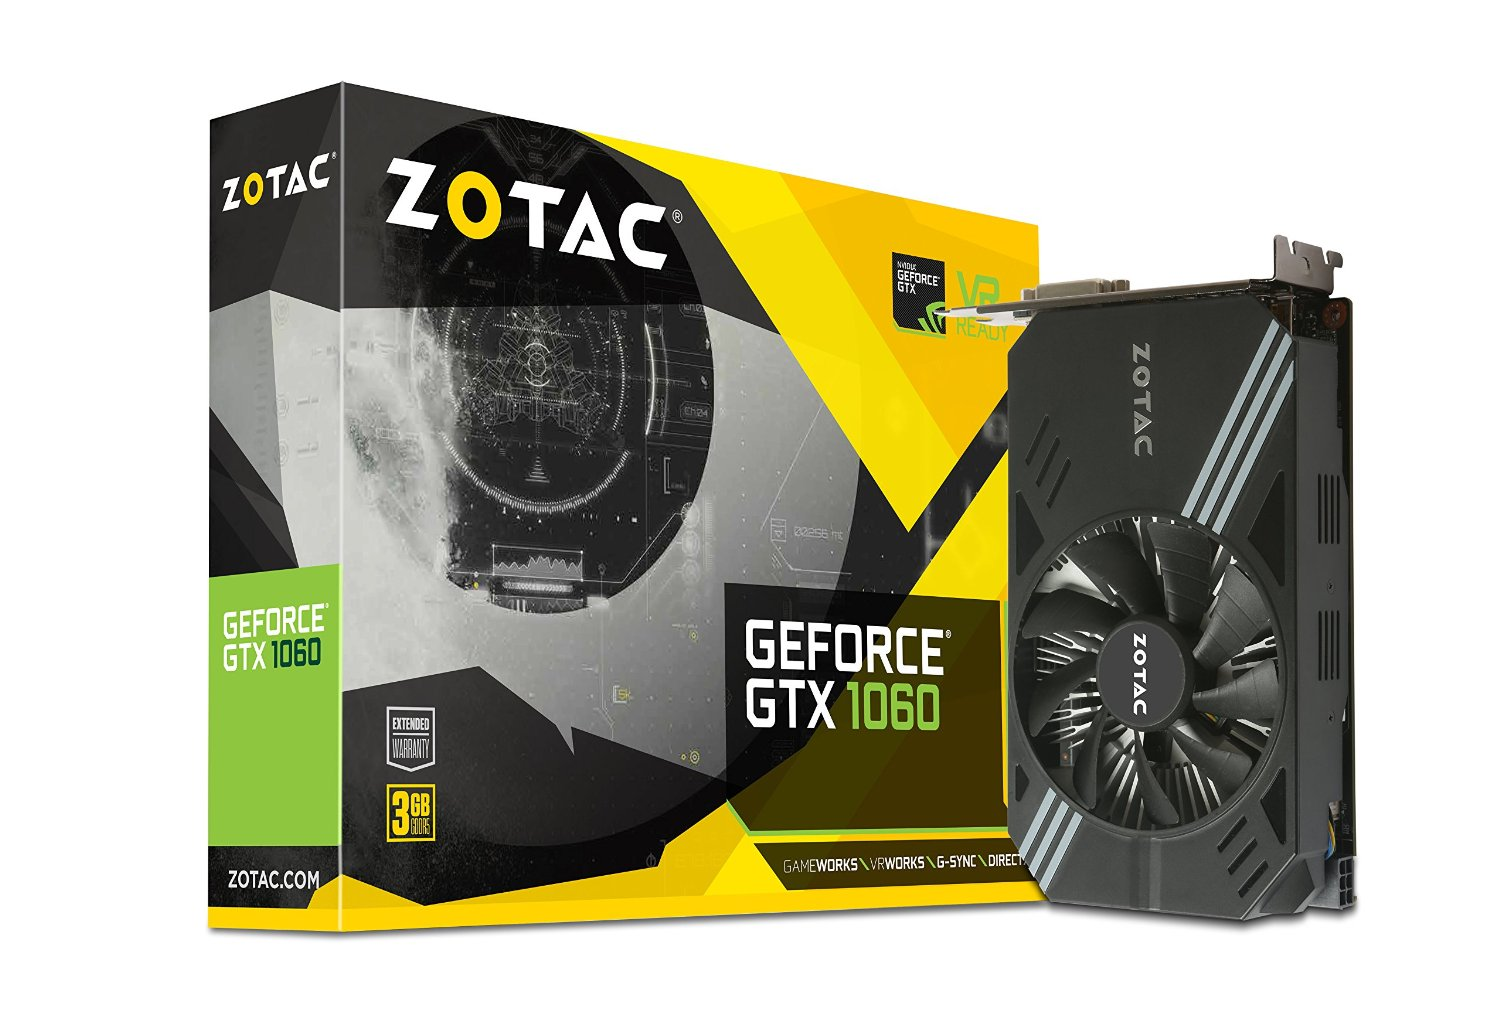 ZOTAC GeForce GTX 1060, 3GB GDDR5 (192 Bit), HDMI, DVI-D, 3xDP video karte